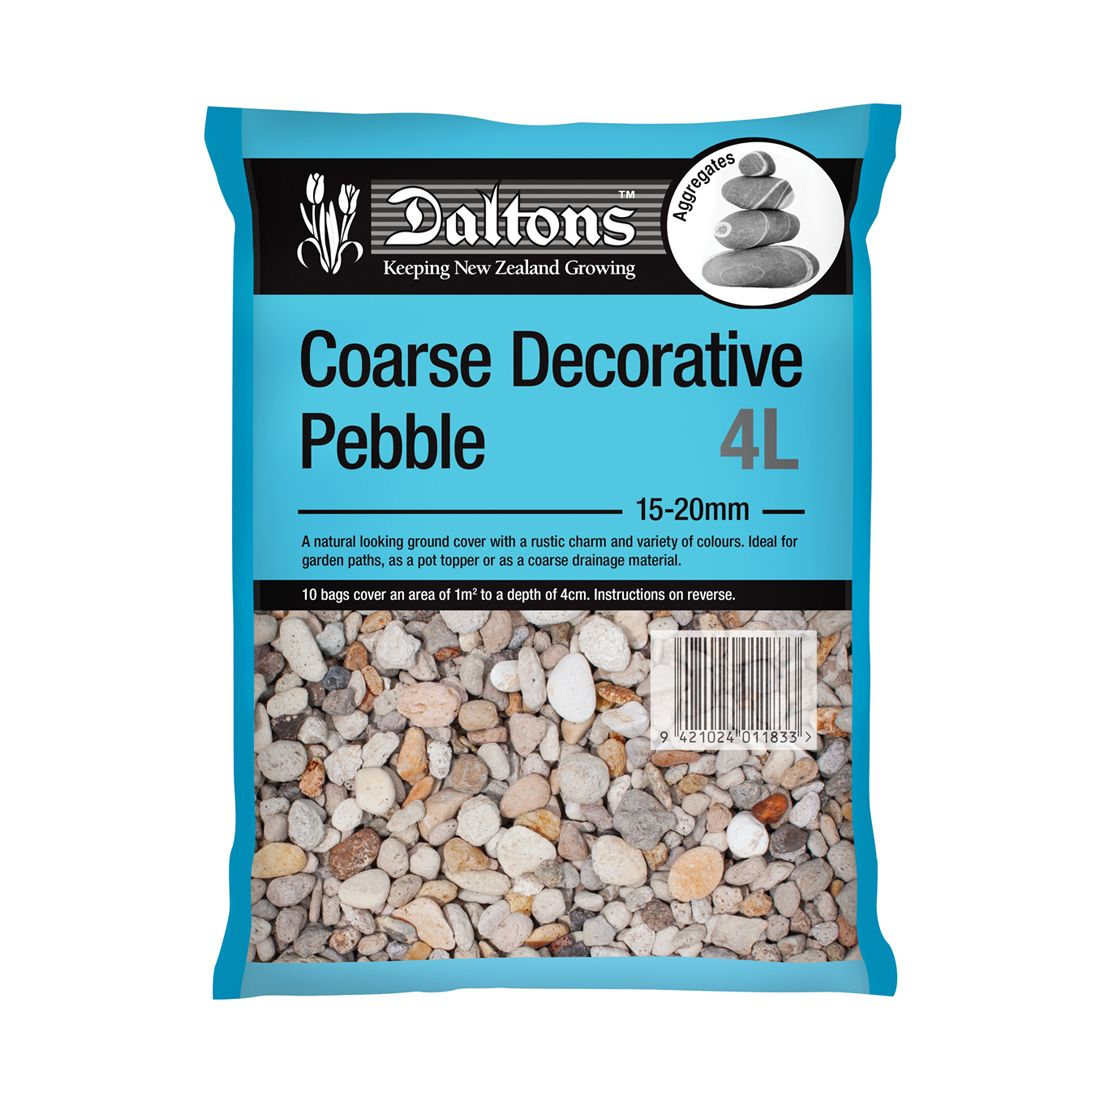 Coarse Decorative Pebble 4L Bag